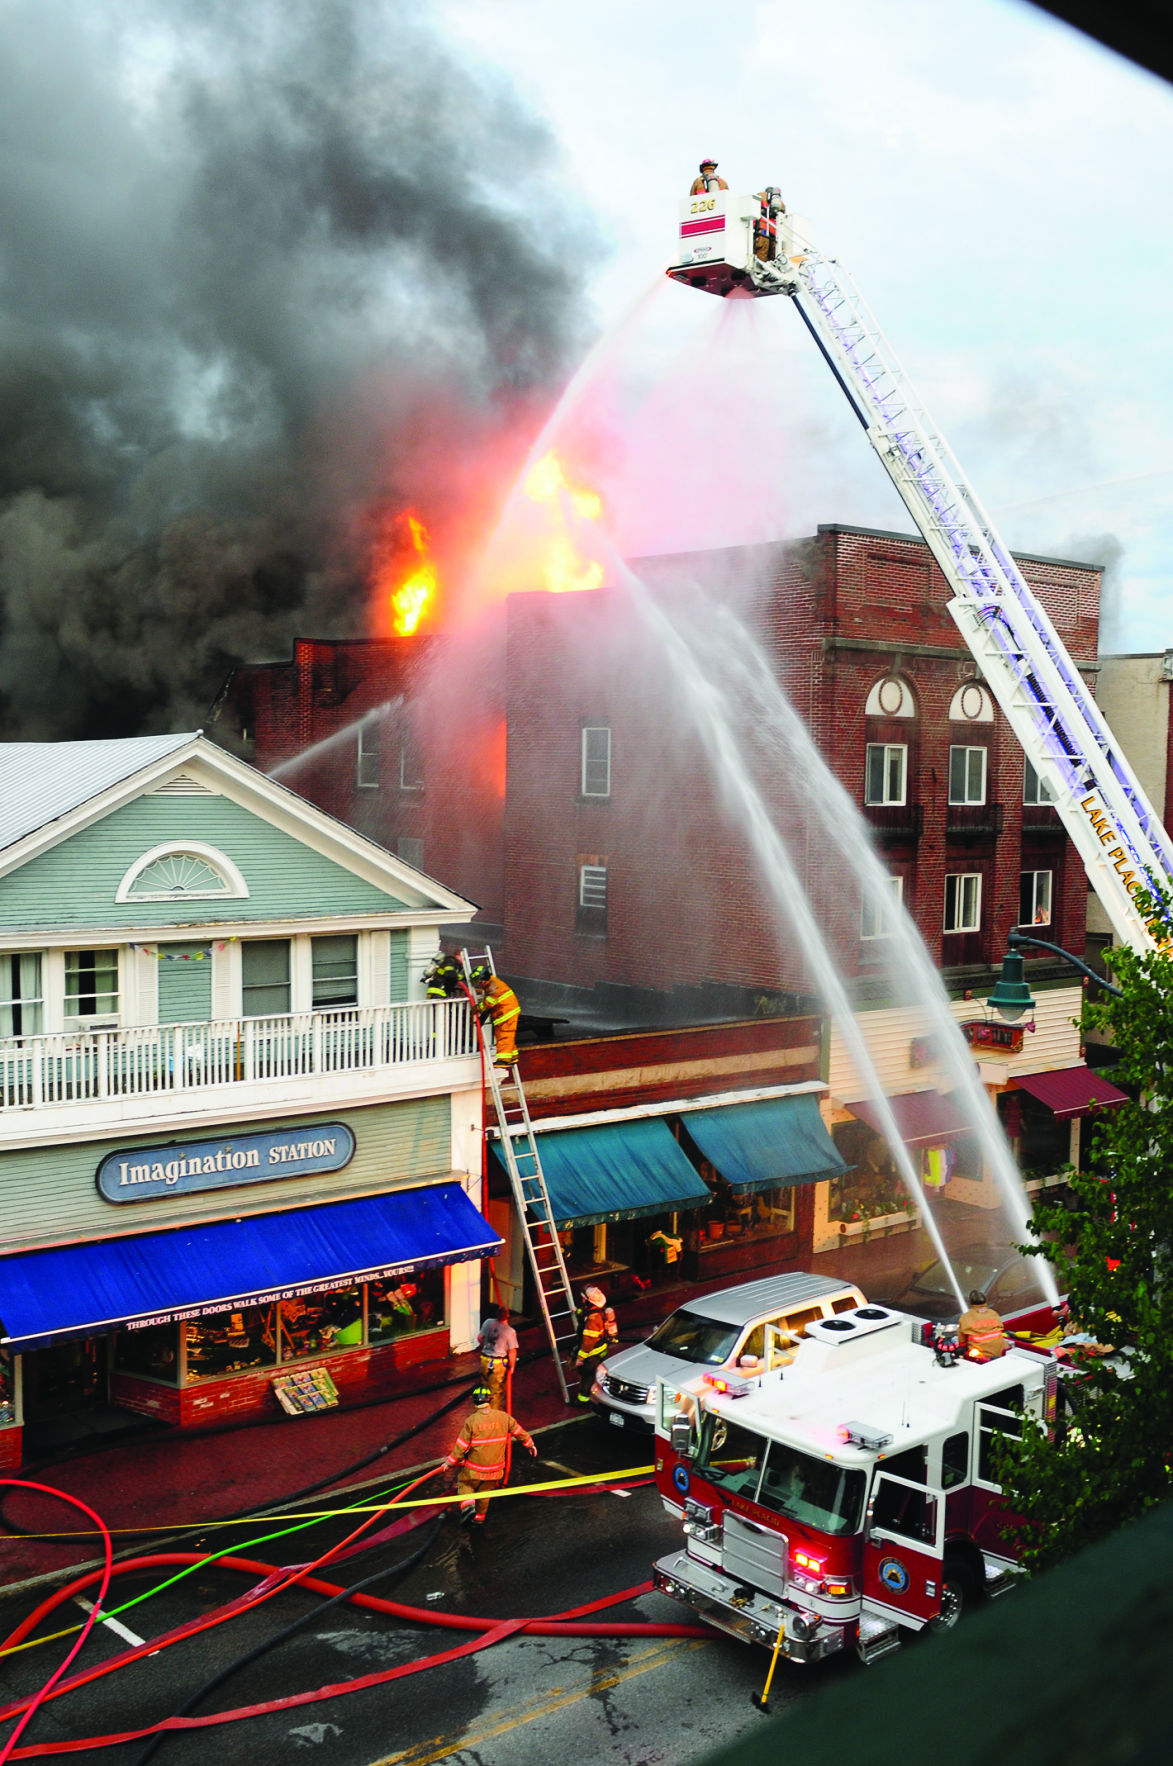 Fire Reported On Main Street In Lake Placid | News Regarding Lake Placid Events 2021